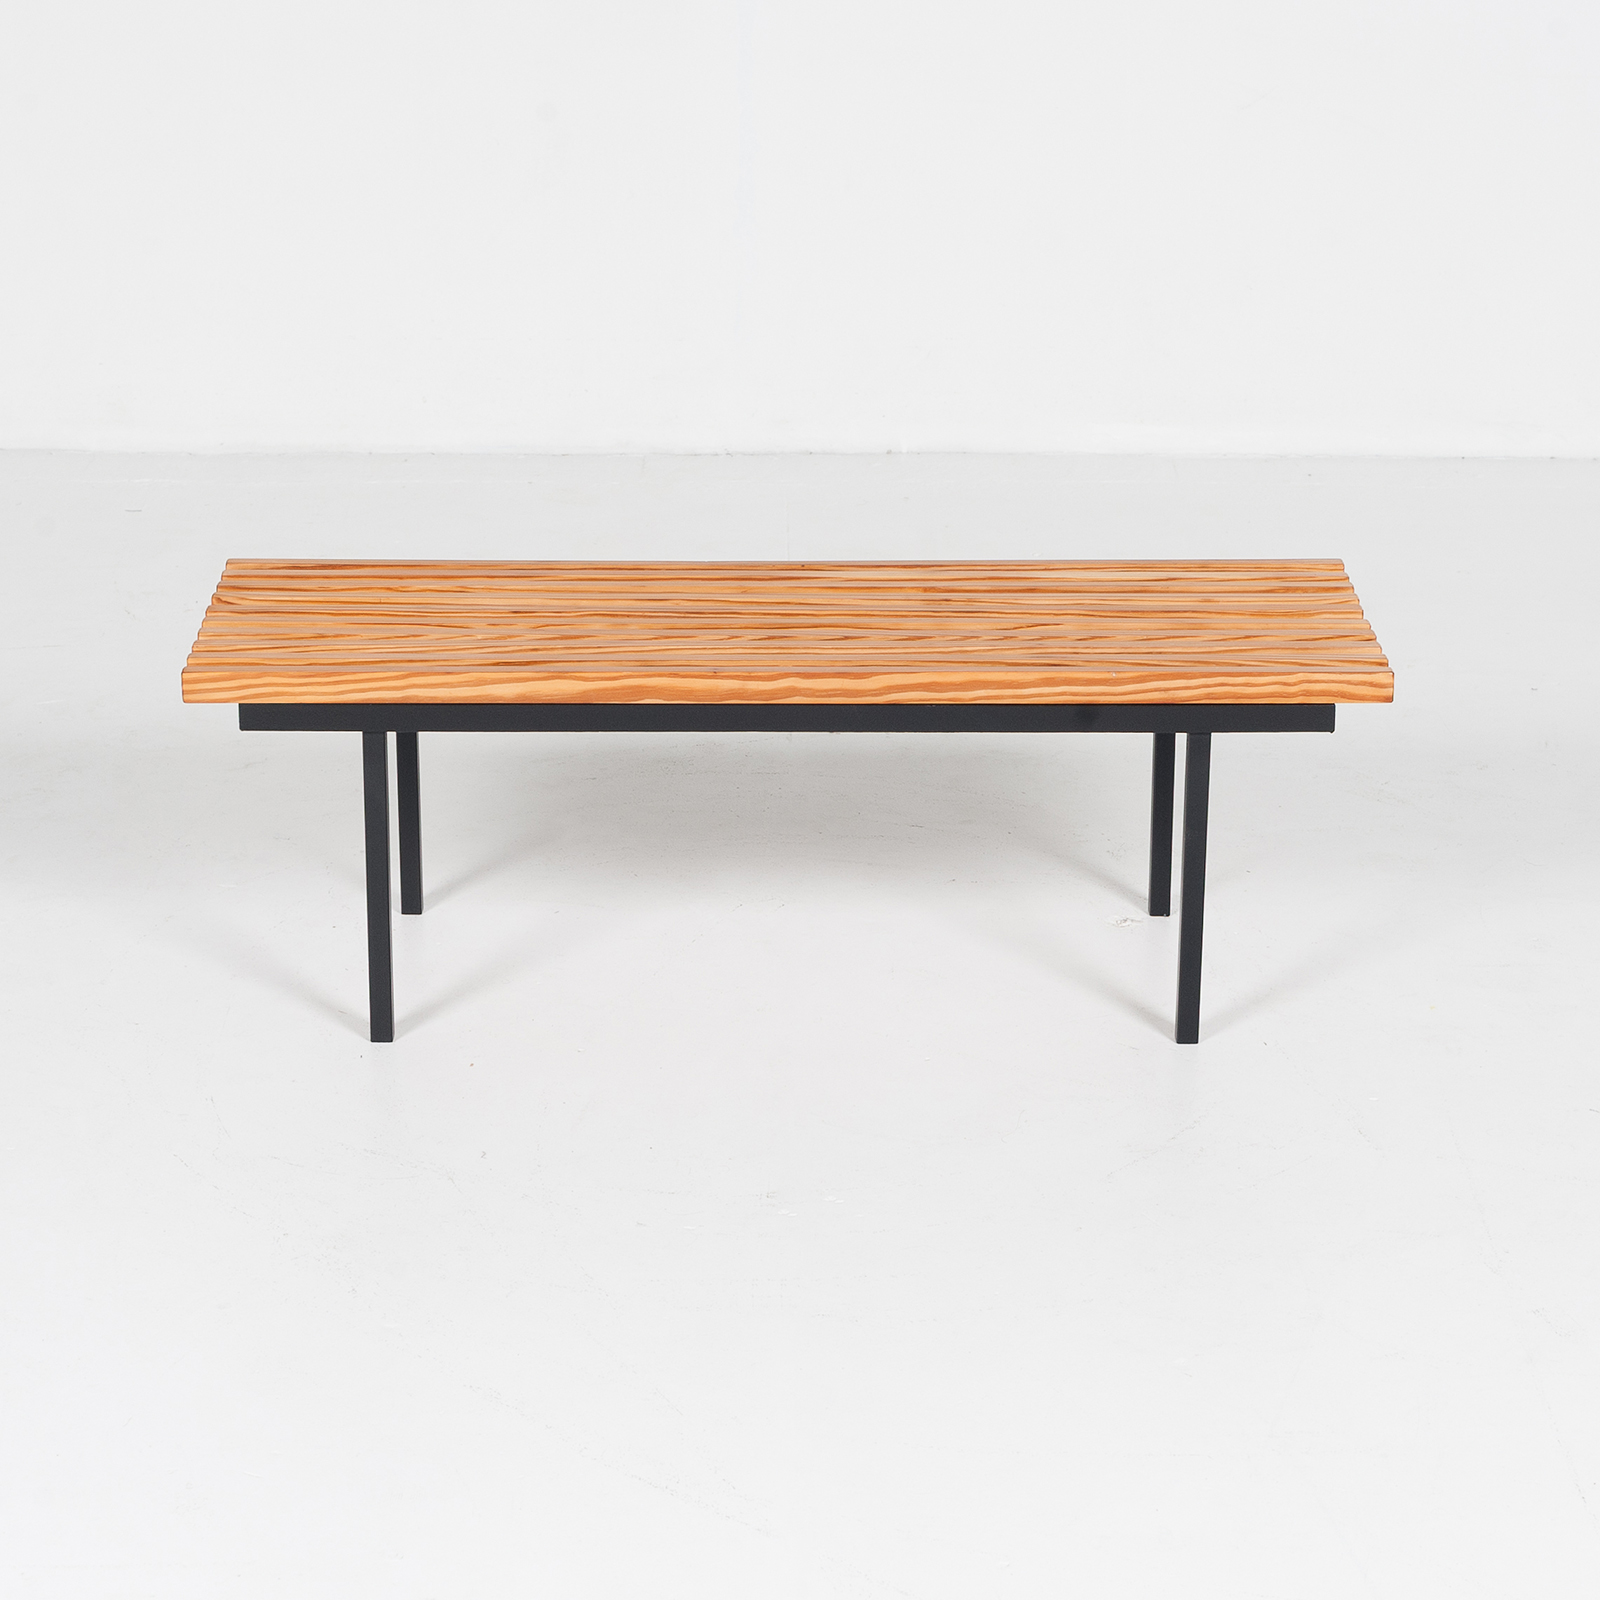 Bench In Pine And Steel, 1950s, The Netherlands 08